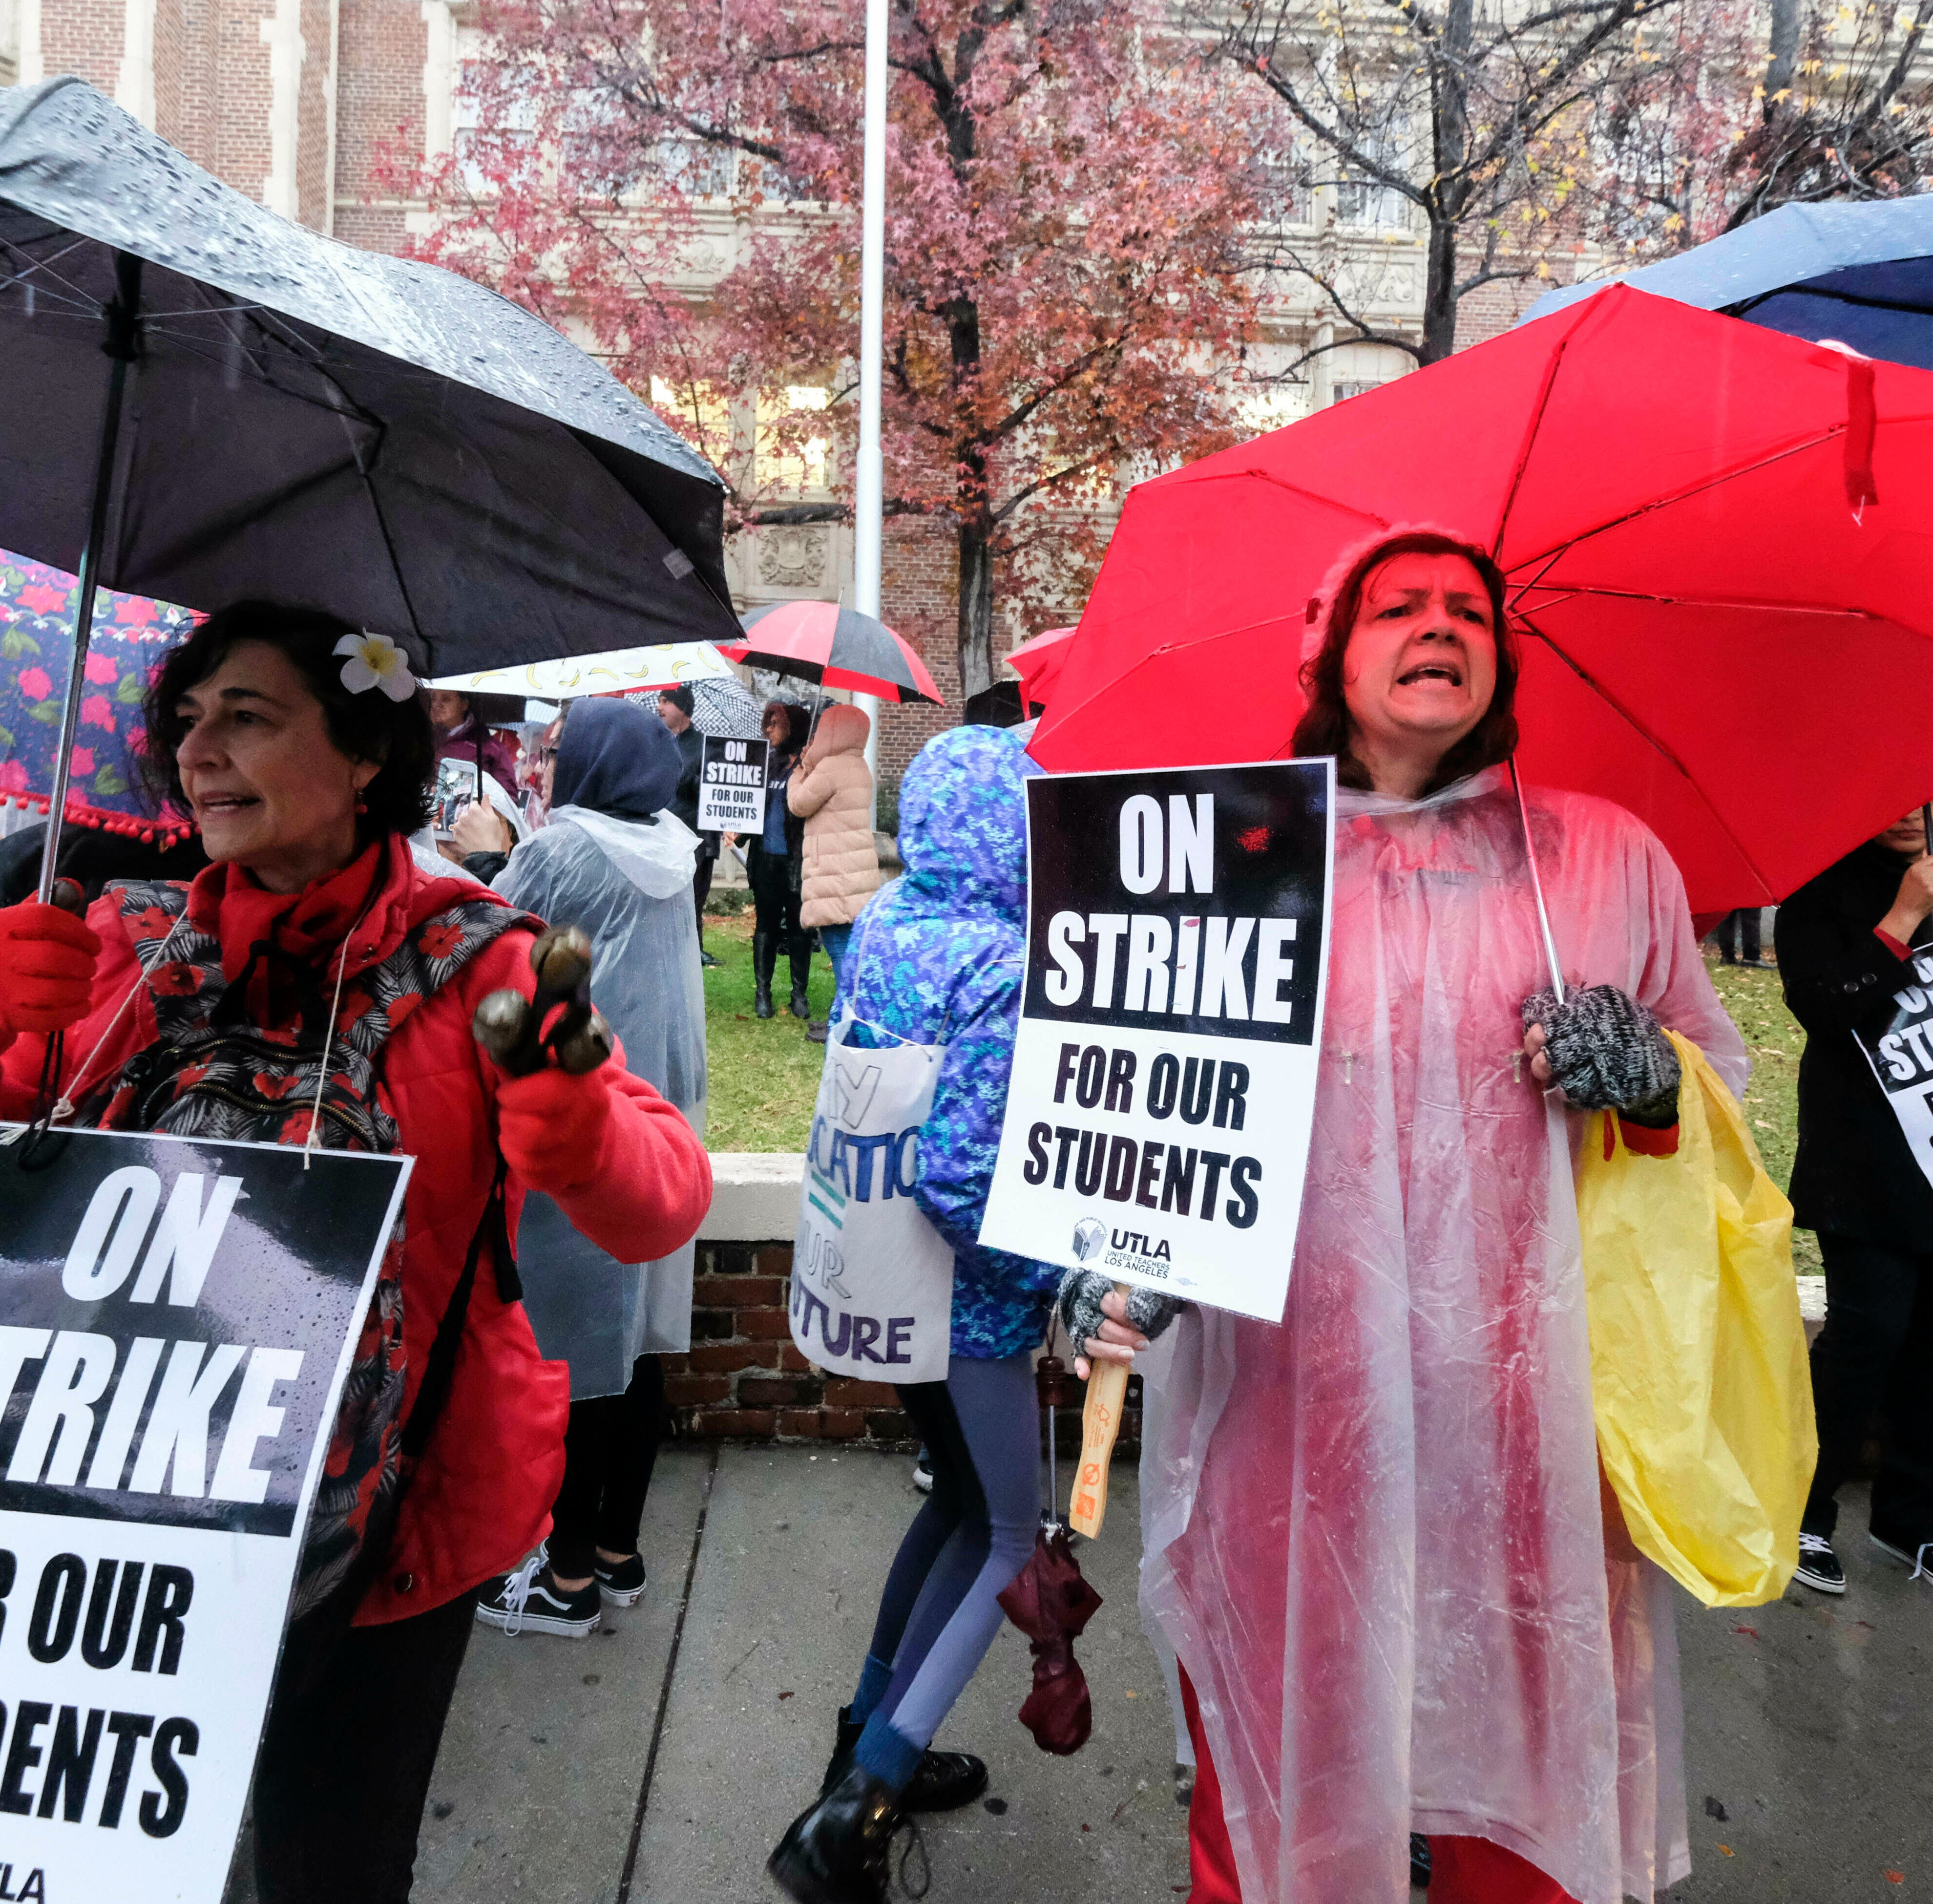 Teachers strike in the rain outside John Marshall High School, Monday, Jan. 14, 2019, in Los Angeles. Tens of thousands of Los Angeles teachers are striking after contentious contract negotiations failed in the nation's second-largest school district.(AP Photo/Ringo H.W. Chiu) ORG XMIT: CARC107